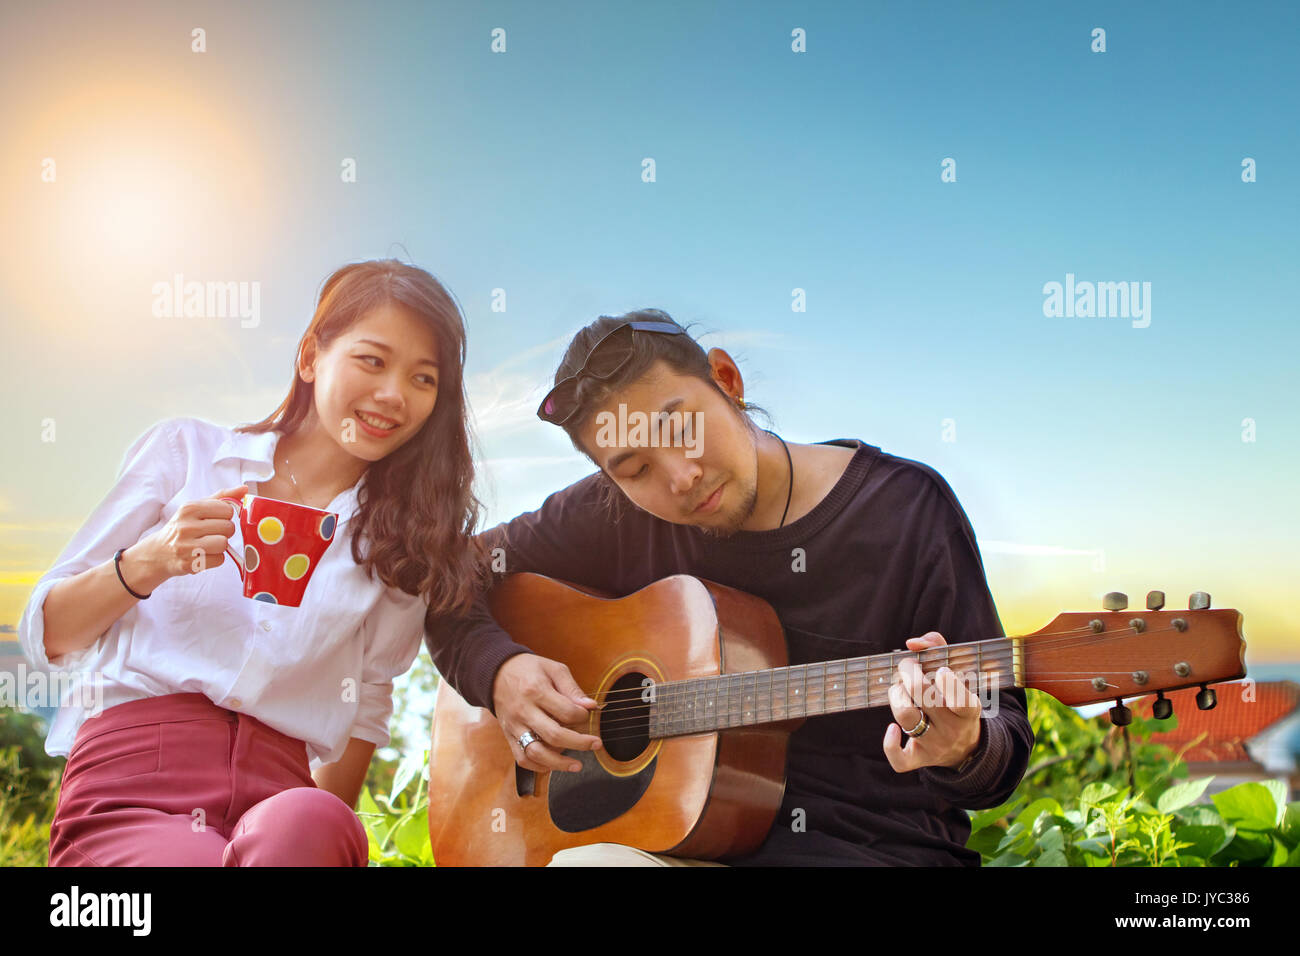 couples of younger asian man and woman relaxing playing guitar in park - Stock Image